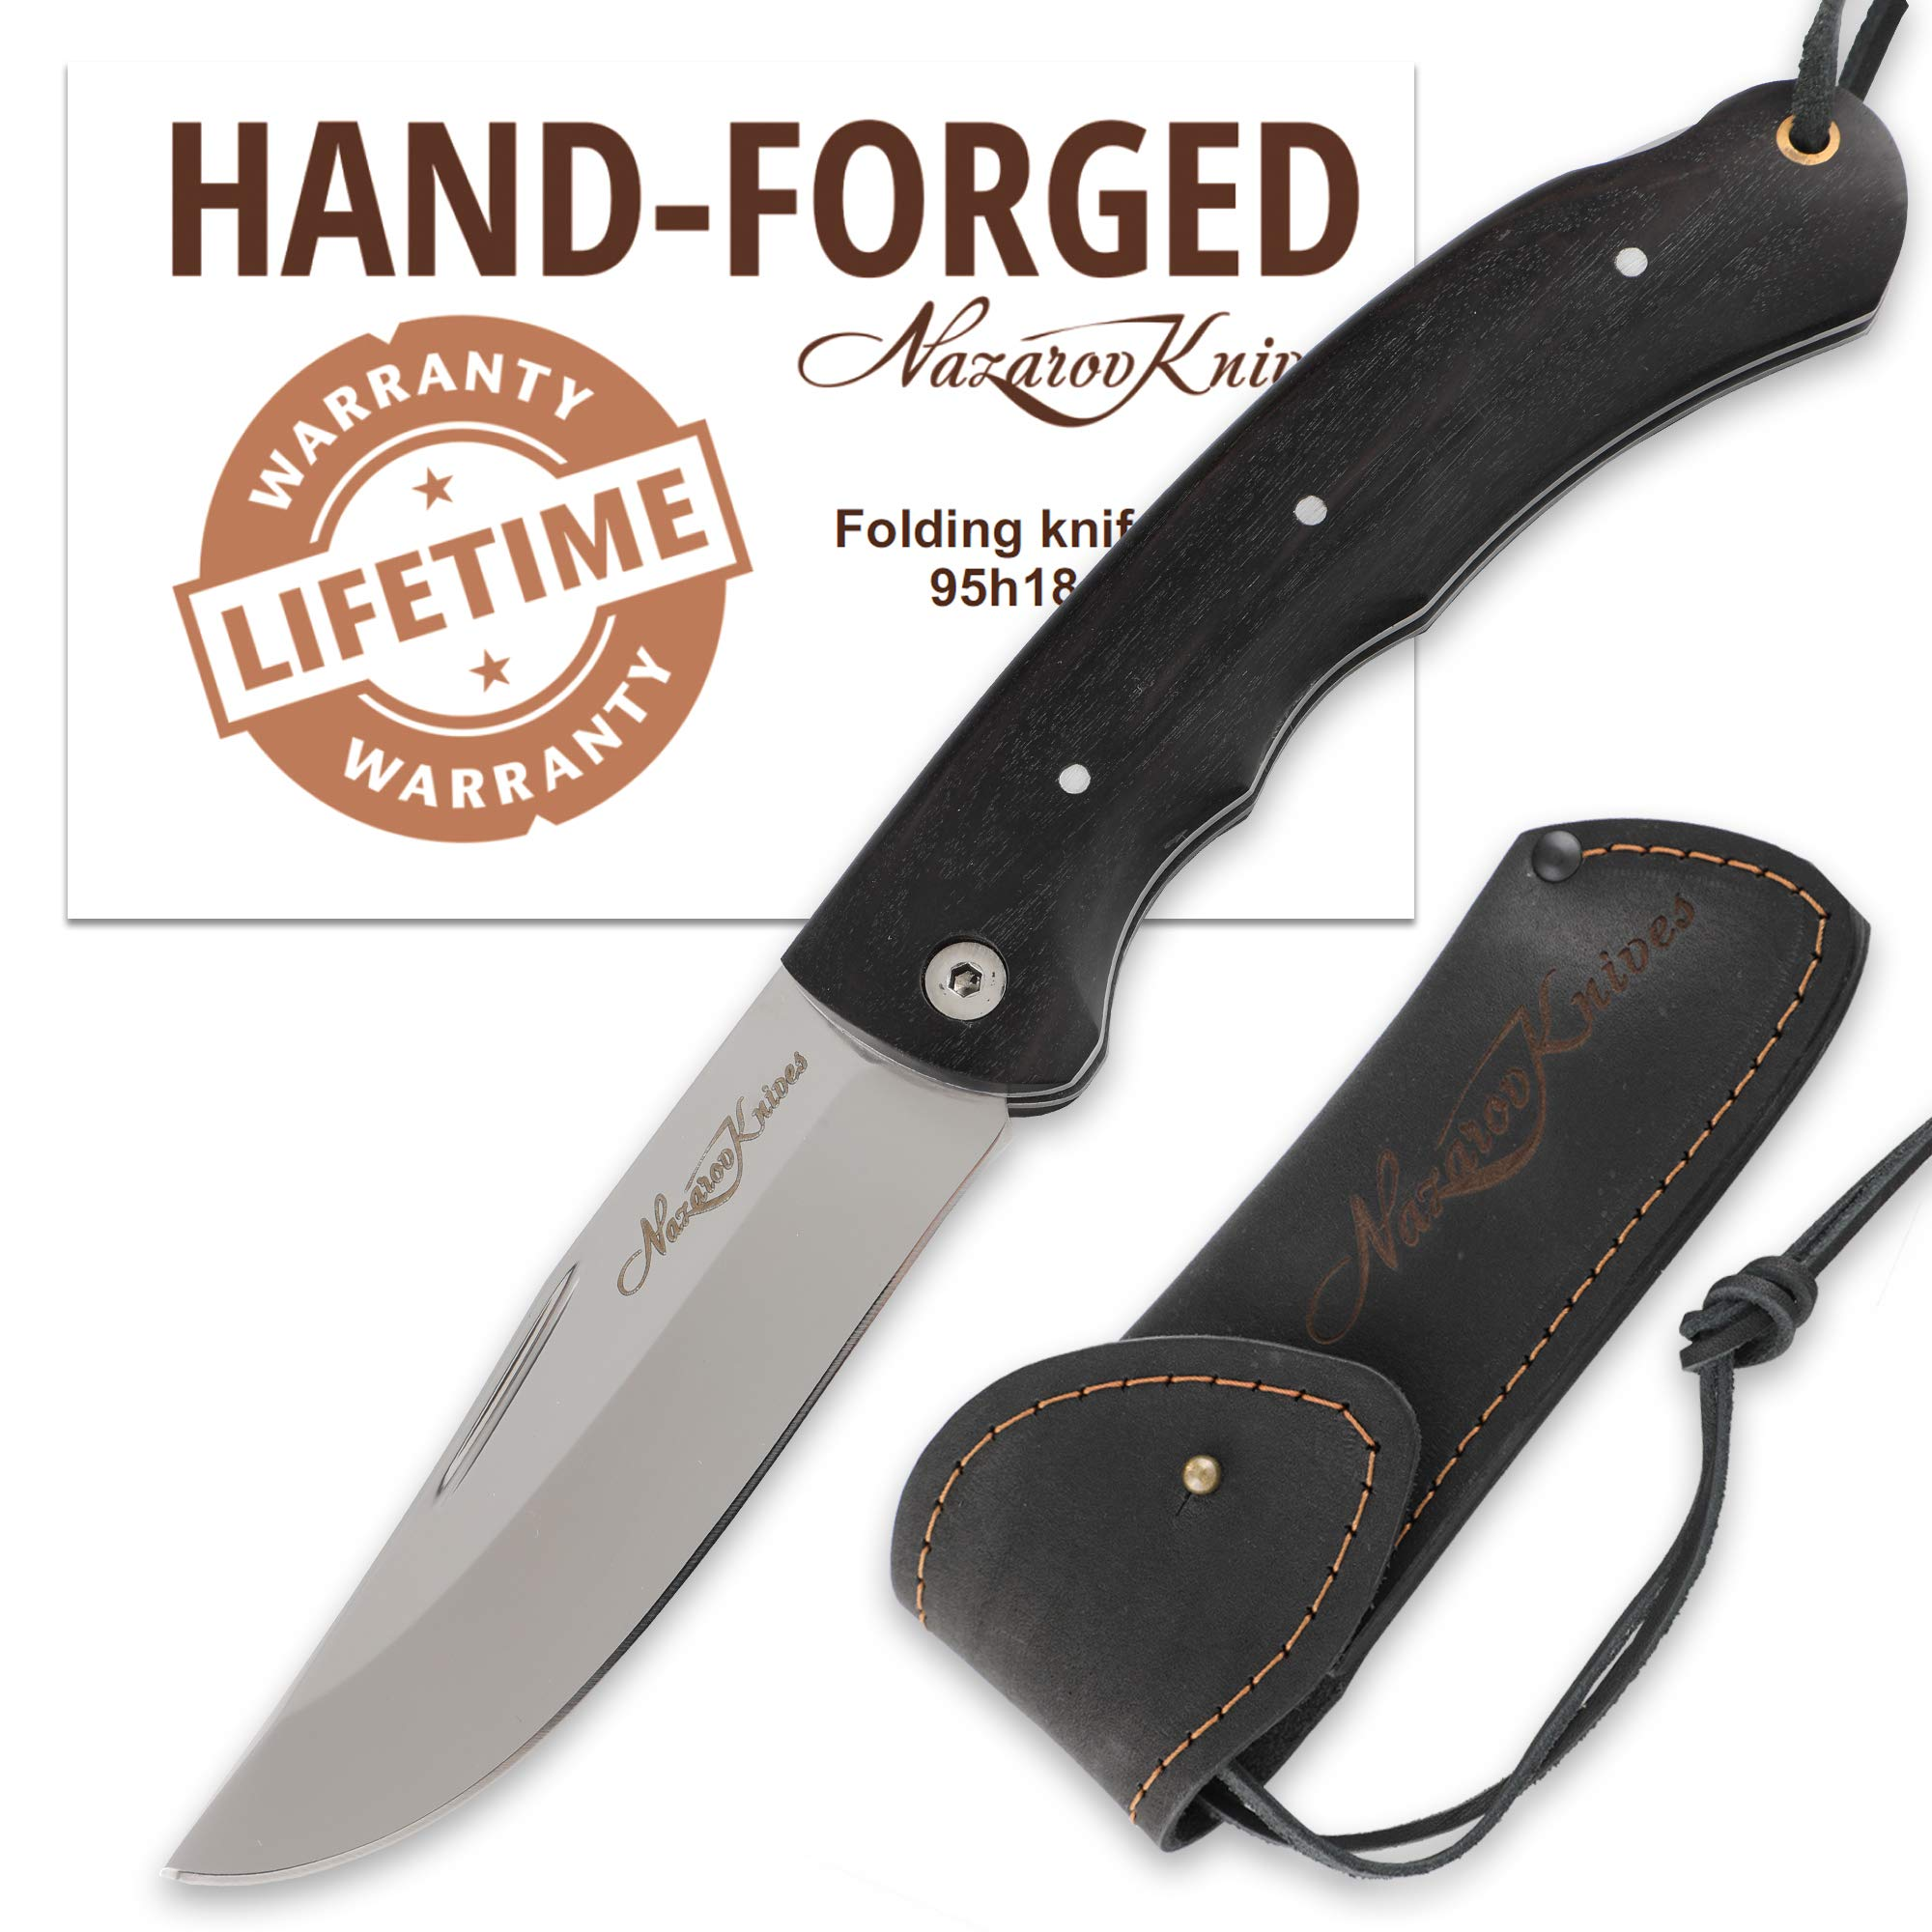 Pocket Knife - Pocket Utility Knife - High Carbon Stainless Steel - Hornbeam Handle - TAIGA - Leather Sheath